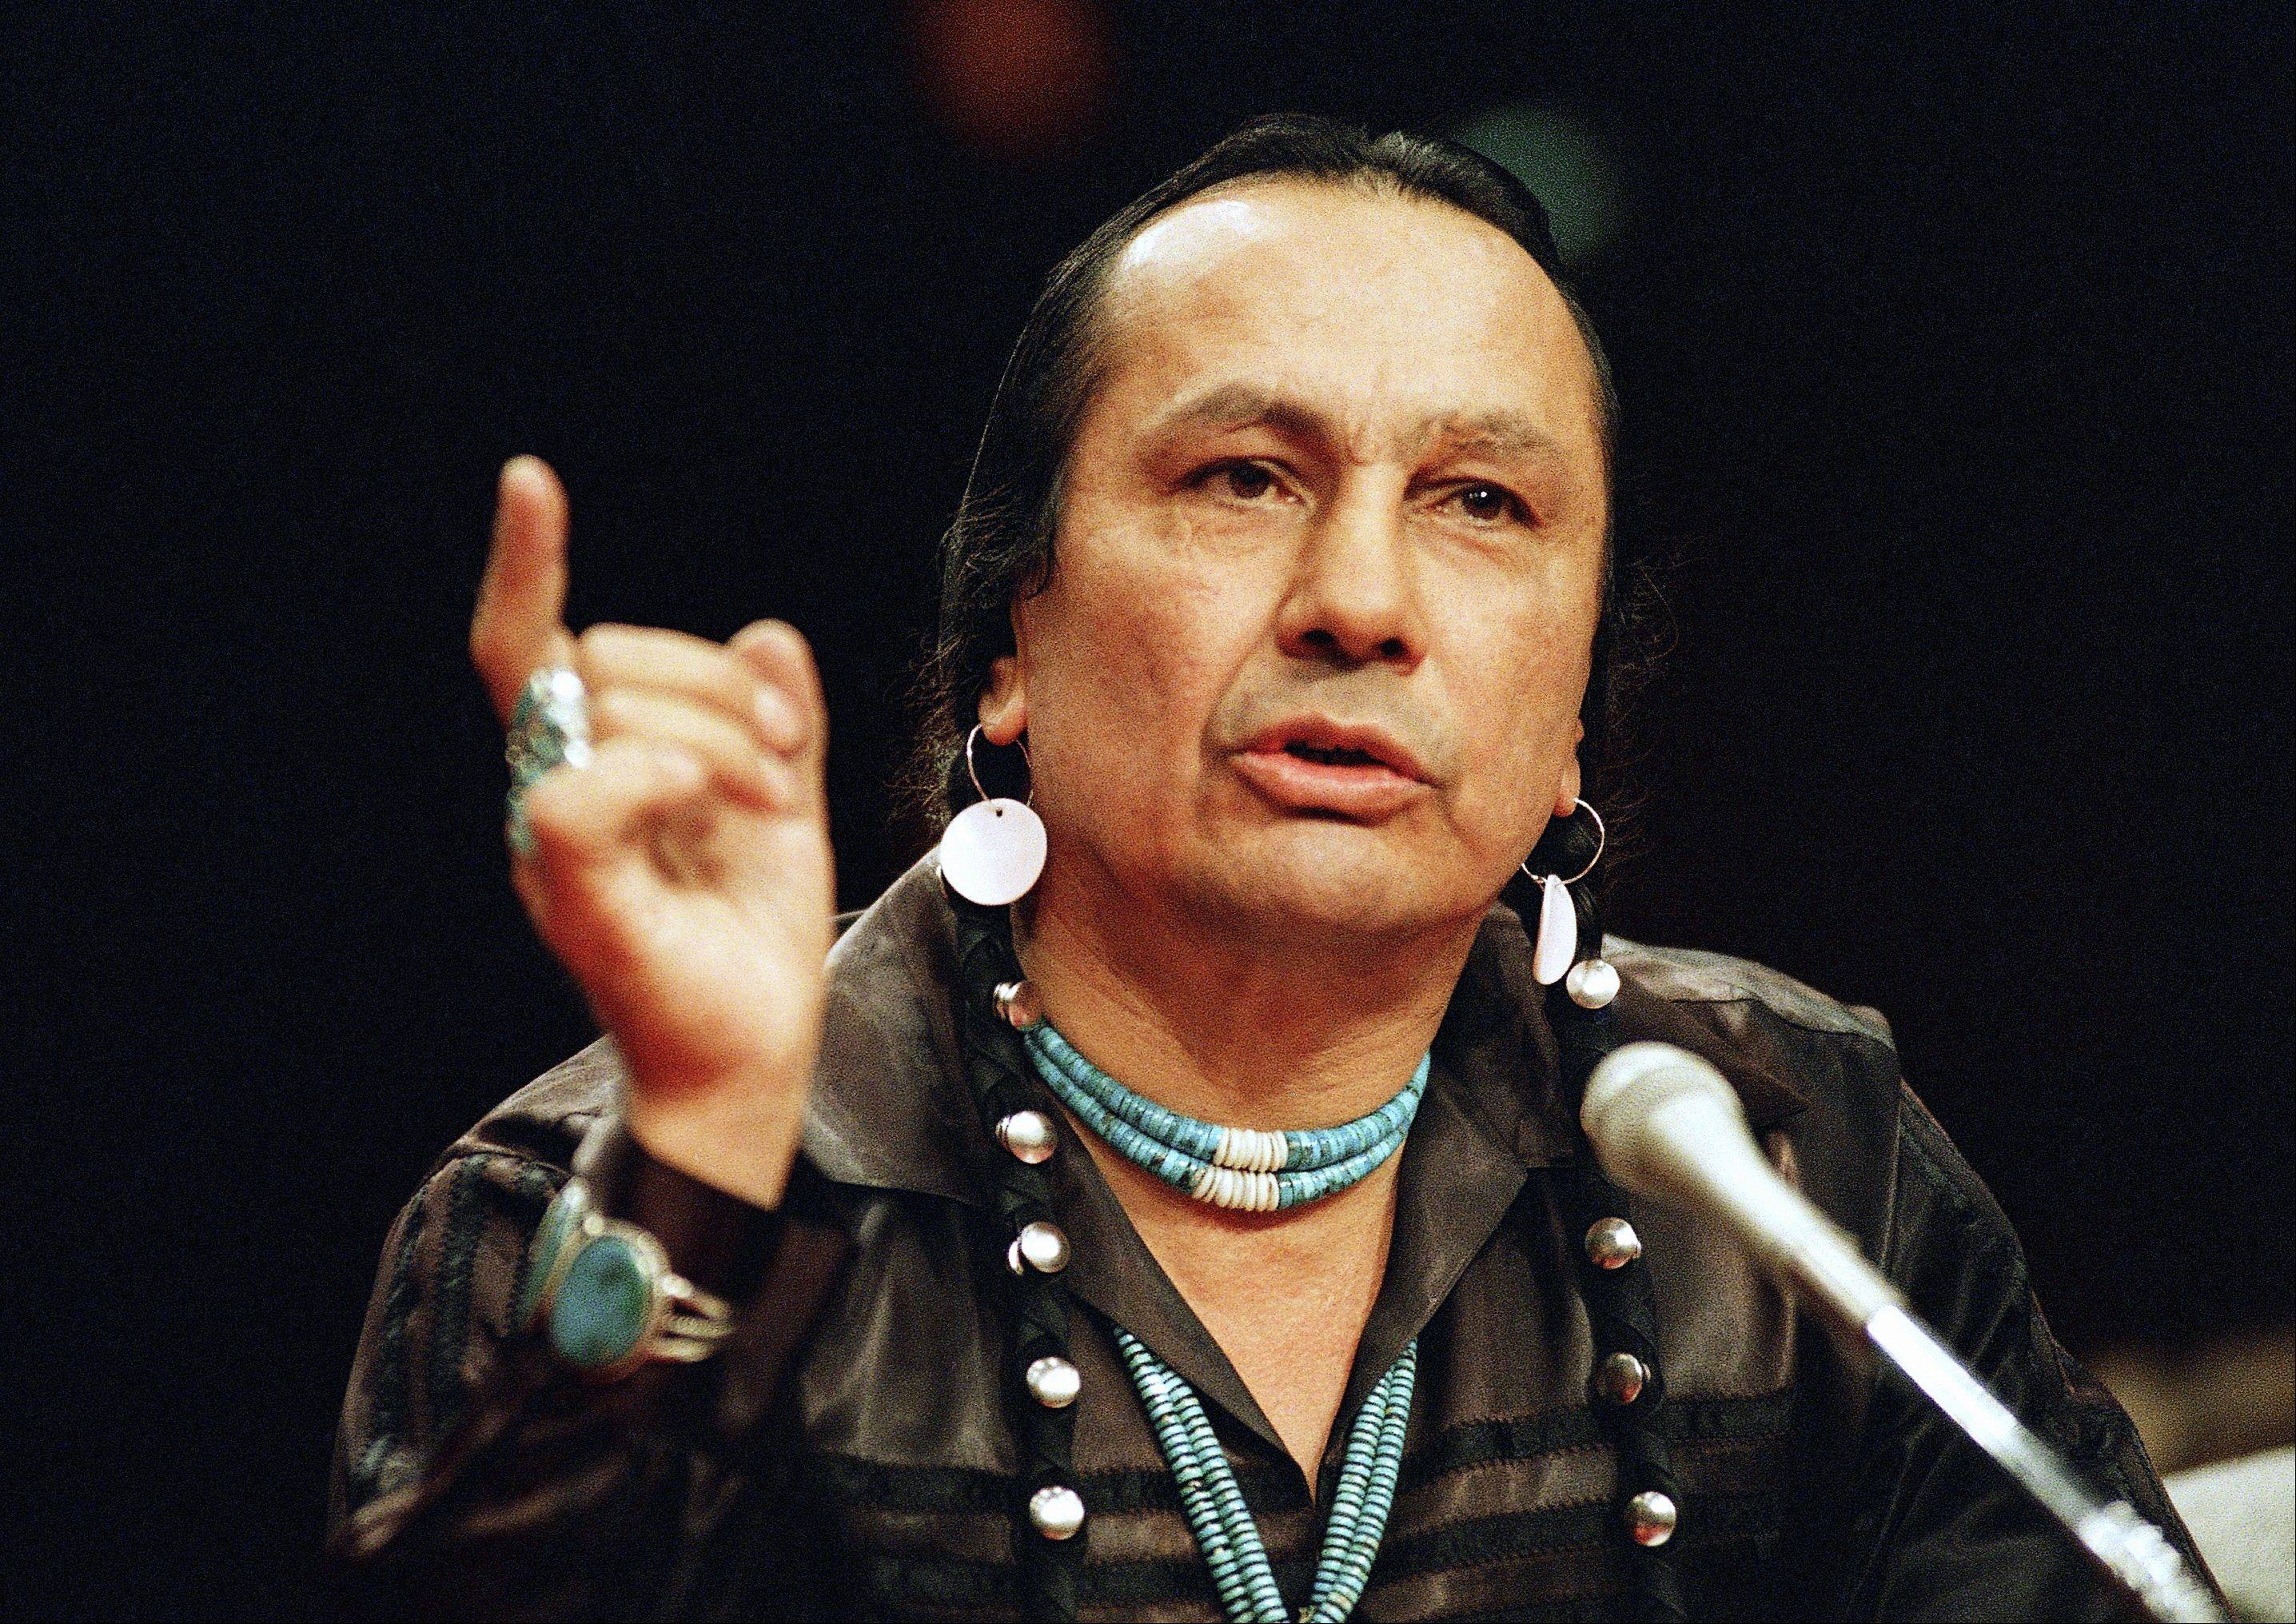 Russell Means, a former American Indian Movement activist who helped lead the 1973 uprising at Wounded Knee, reveled in stirring up attention and appeared in several Hollywood films, died early Monday at his ranch in Zzxin Porcupine, S.D. He was 72.